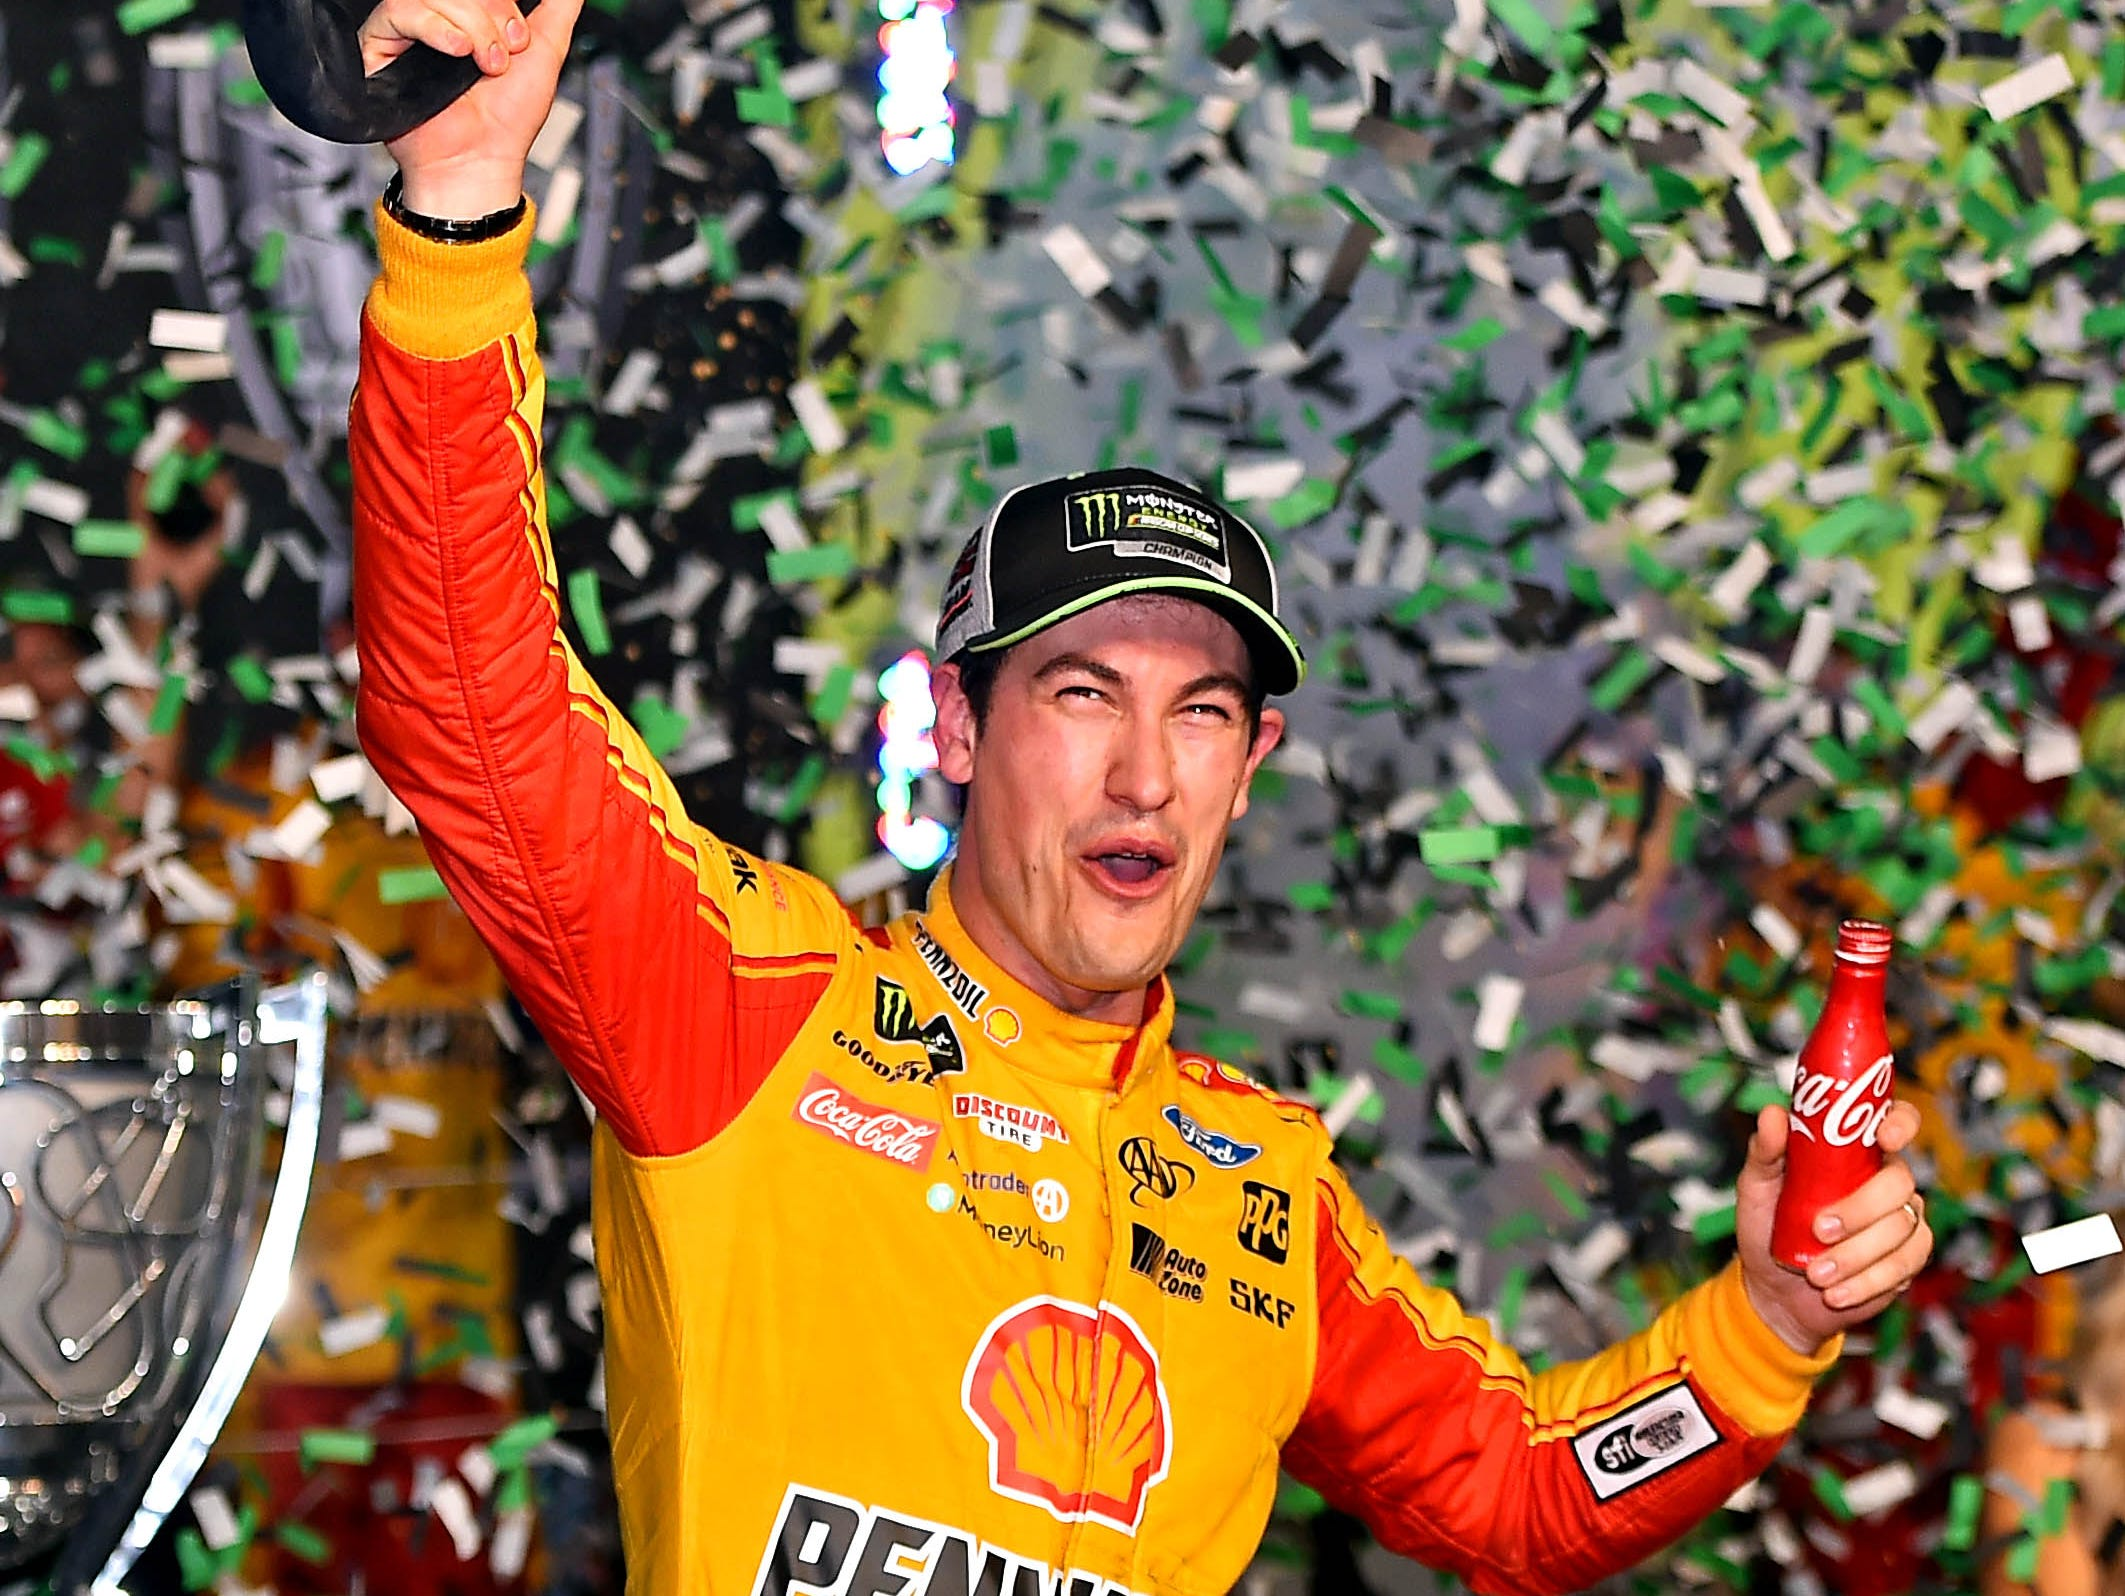 Joey Logano poses for photos after winning the NASCAR Cup championship at Homestead-Miami Speedway.